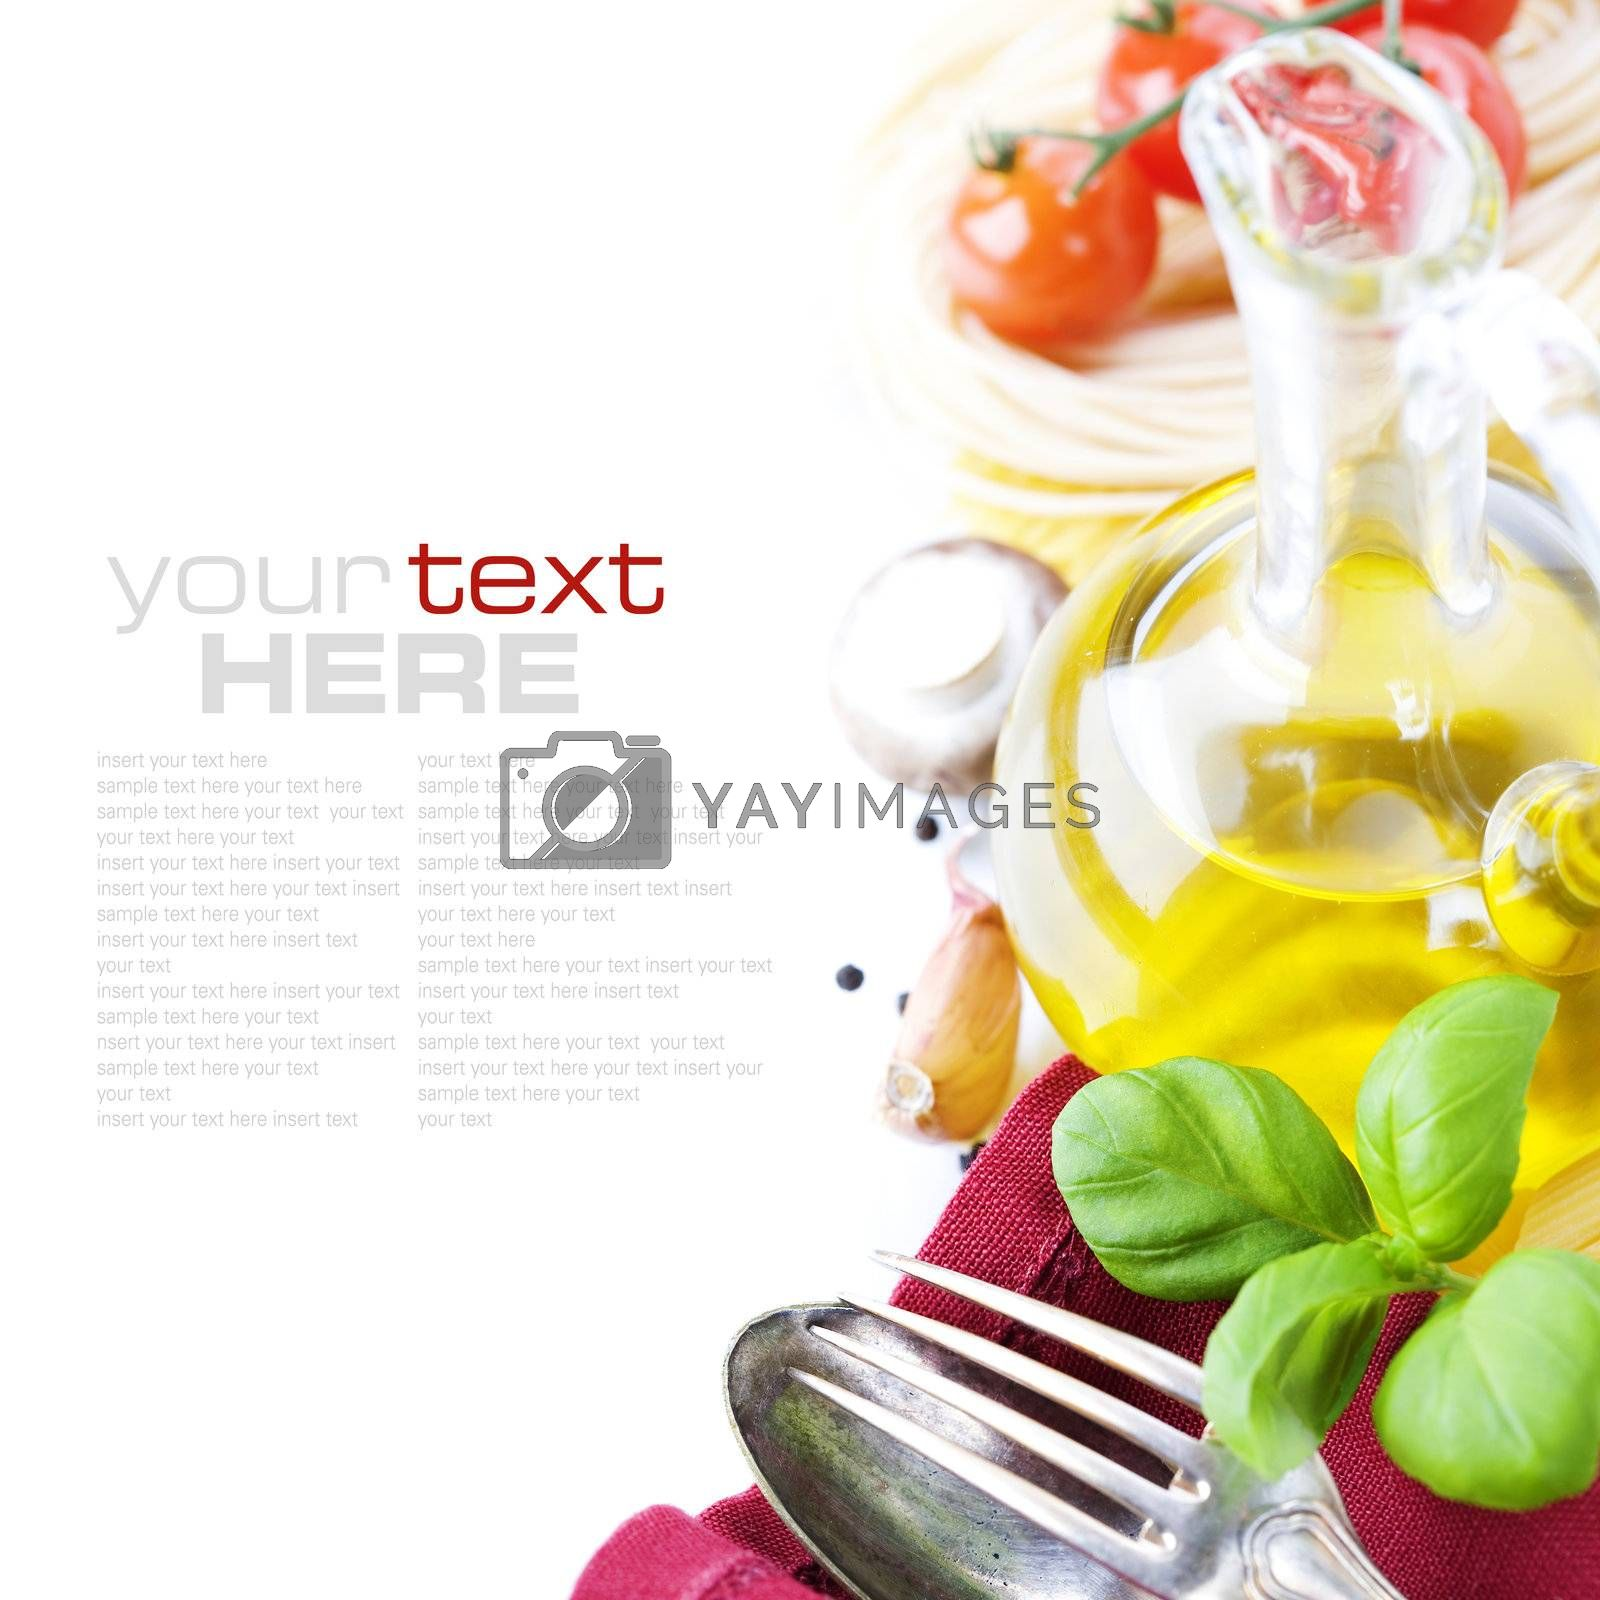 Spoon, fork, napkin and pasta ingredients (Pasta, olive oil, basil, mushrooms, tomato, garlic) with sample text